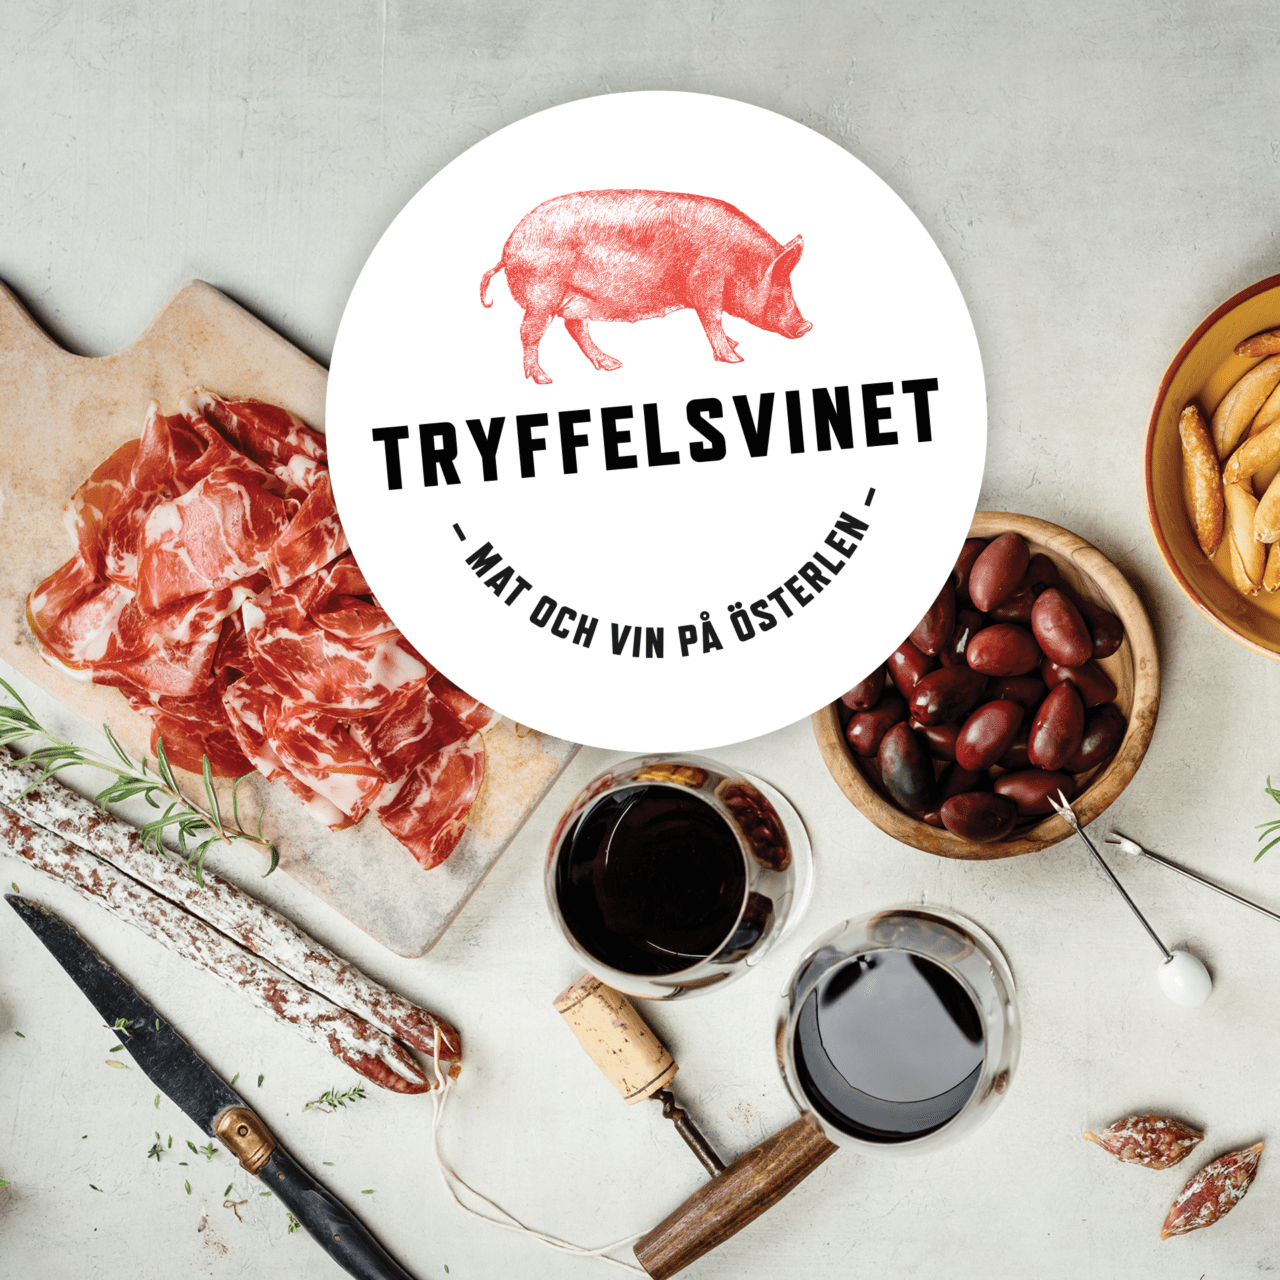 The truffle pig on kivik